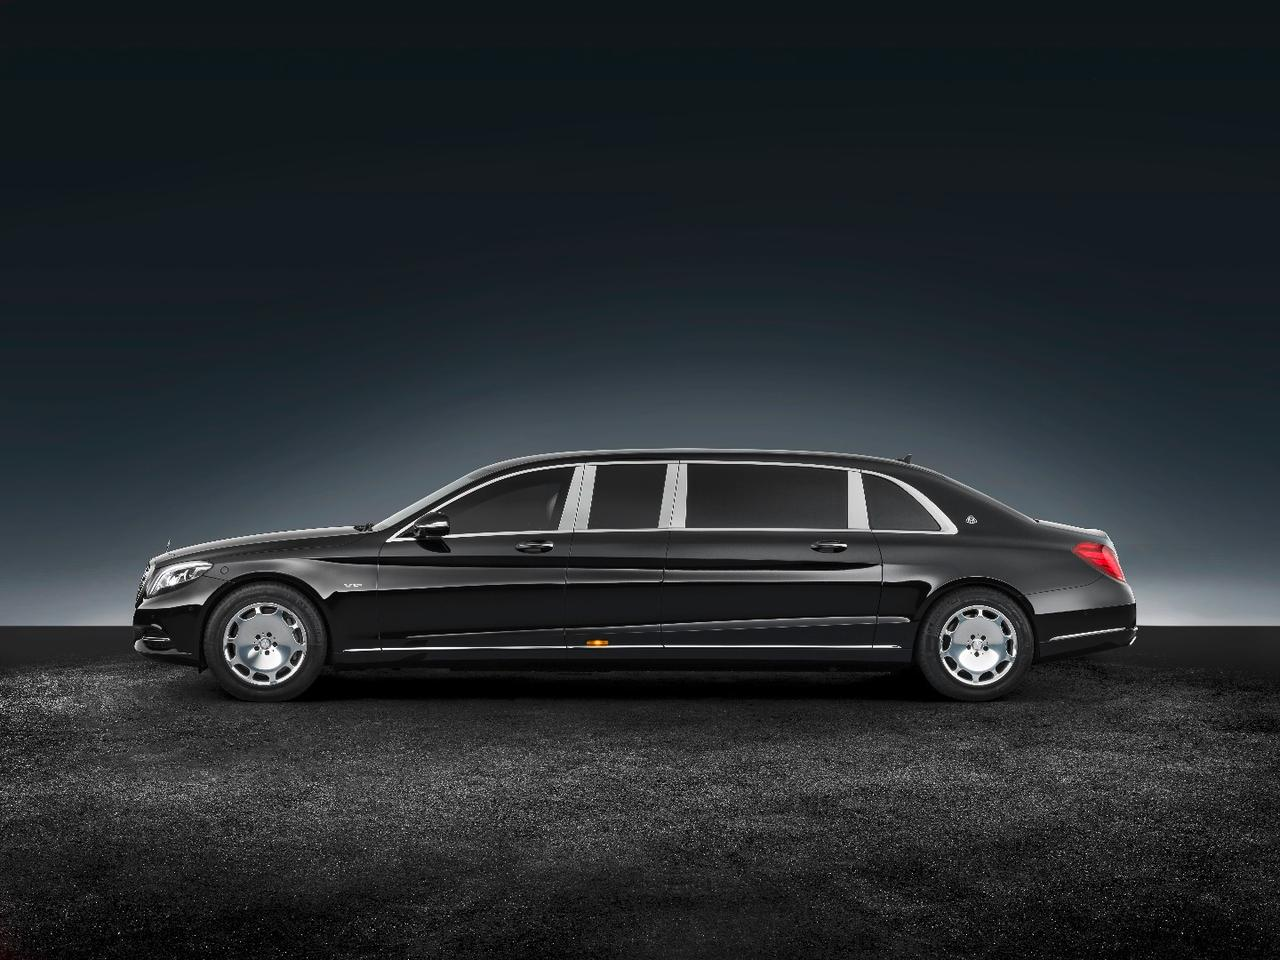 The Mercedes-Maybach S600 Pullman Guard weighs 5.1 tonnes (5.6 tons)